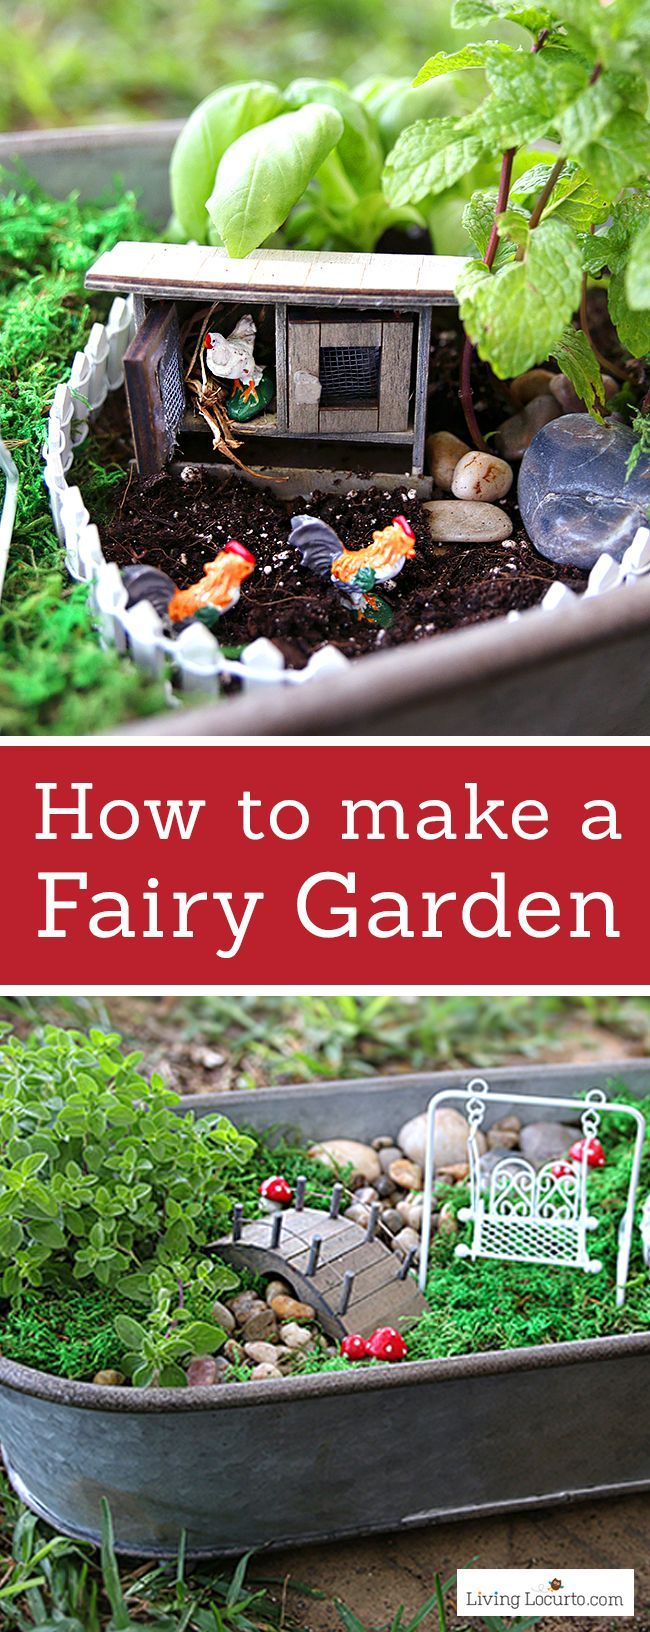 Outdoor Decorating/Gardening : How to Make the CUTEST Fairy Garden